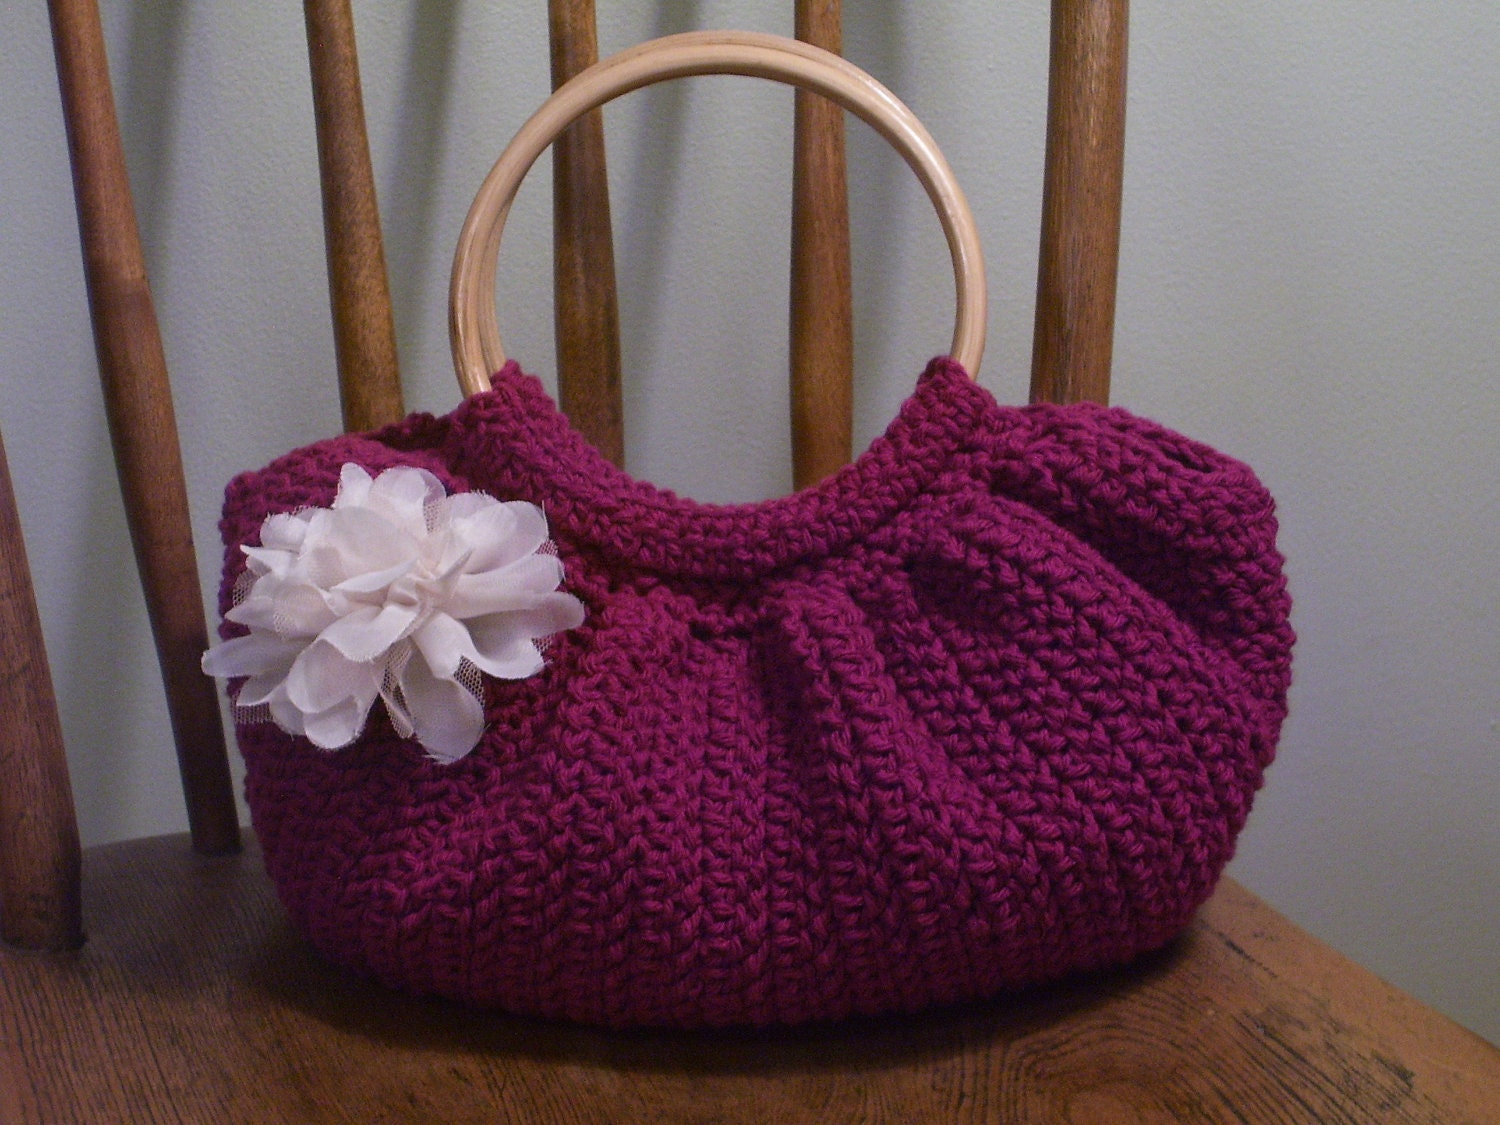 Free Crochet Purse Patterns With Wooden Handles : CROCHET PURSE WOODEN HANDLES PATTERN FREE CROCHET PATTERNS